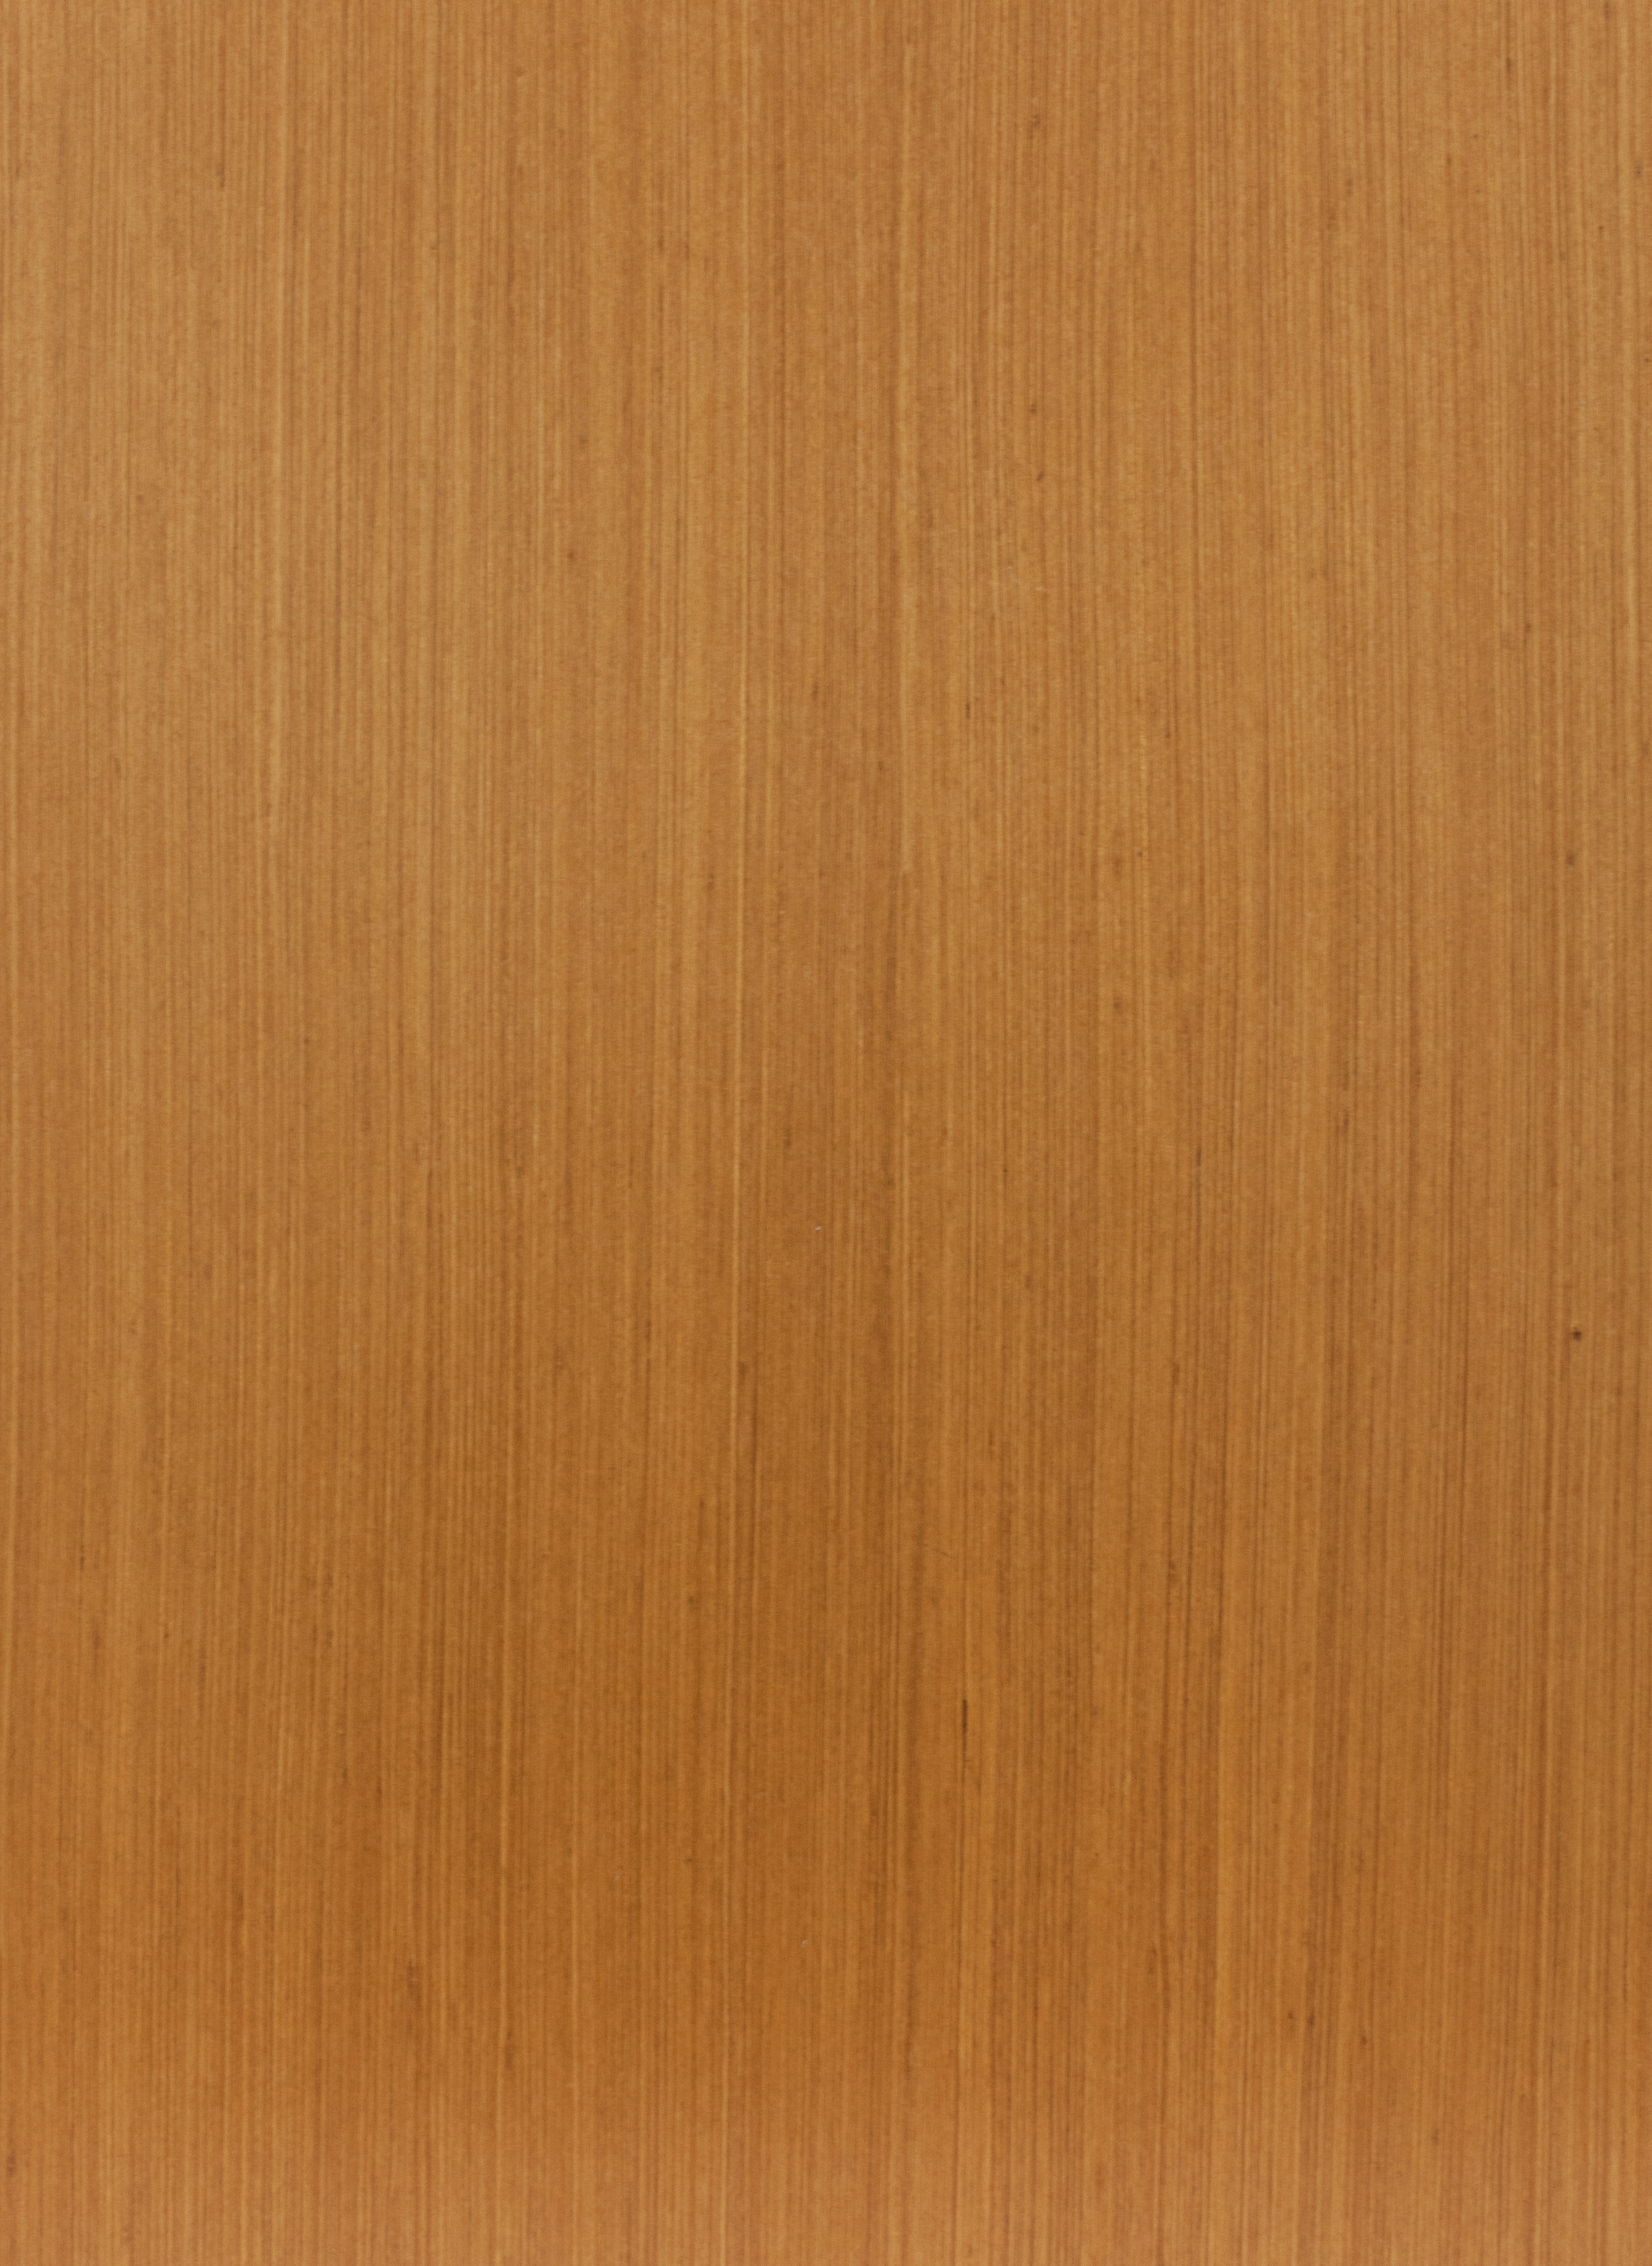 44 Elements Teak Qtr Delmetro Clear.jpg